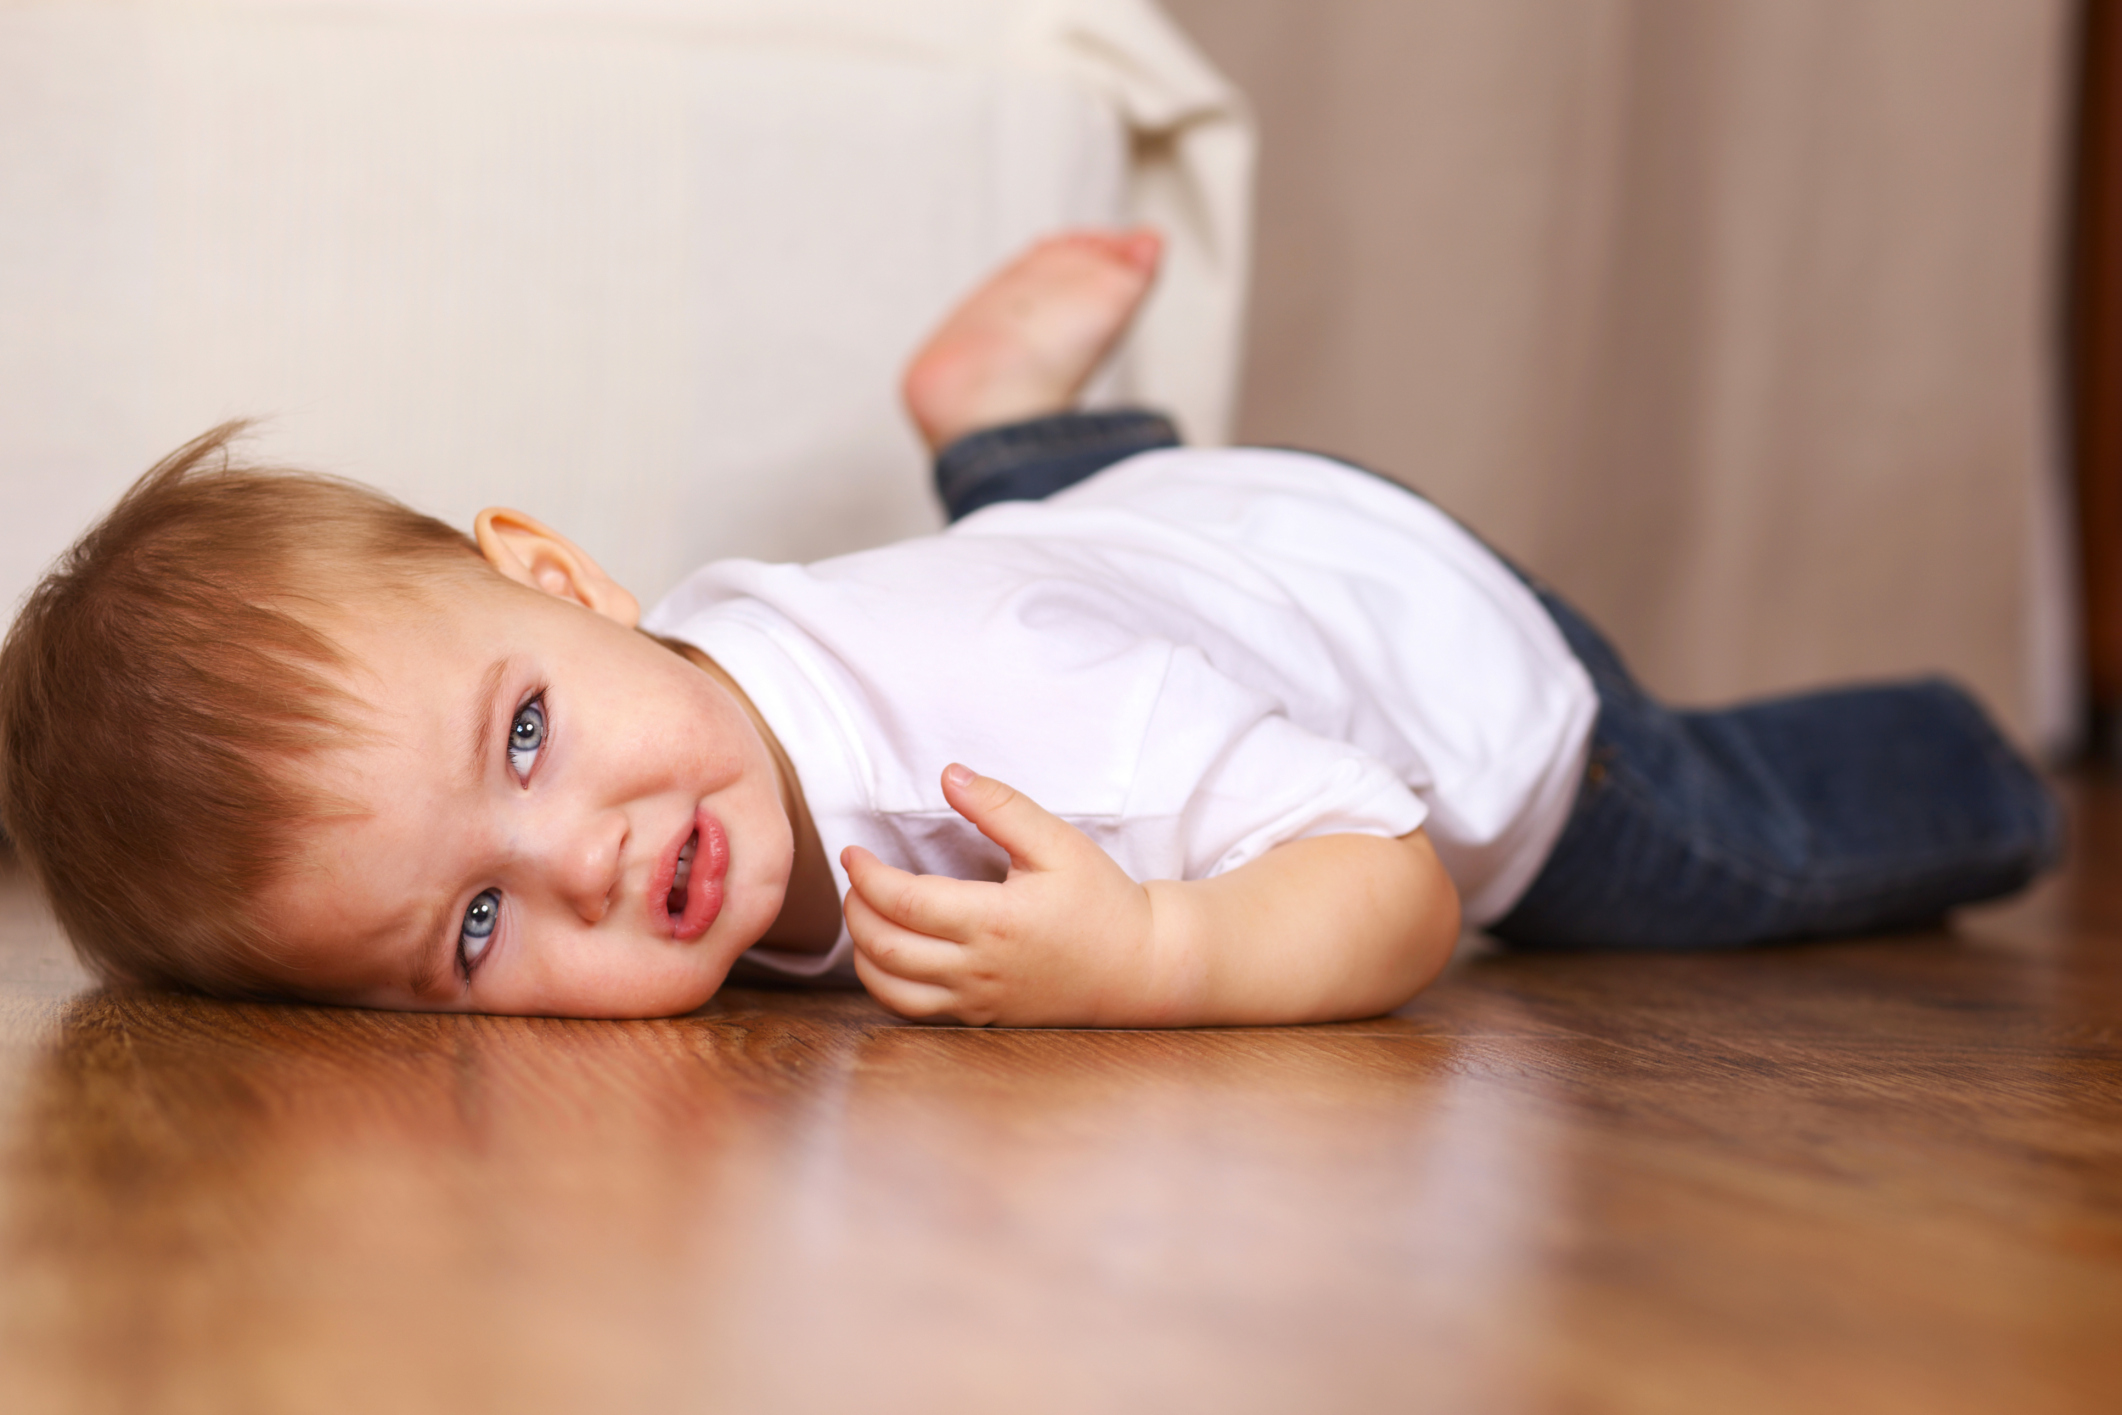 What Causes Sudden Mood Swings in an 18 Month Old